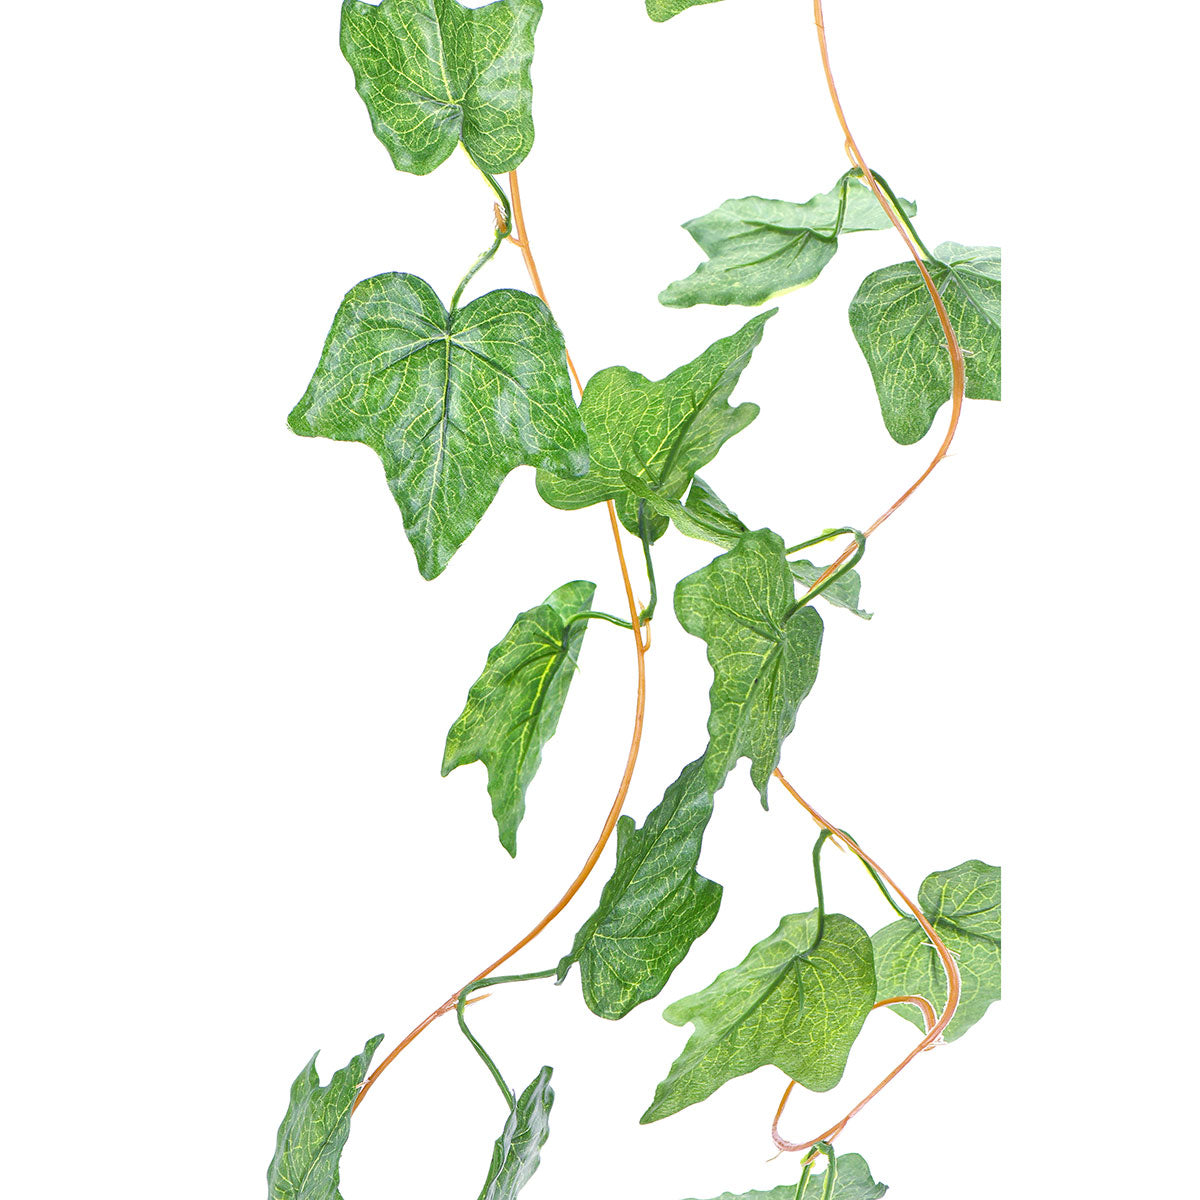 Artificial Hanging Plant Ivy Vine Silk Greenery Leaves (12.5m / 41 feet)